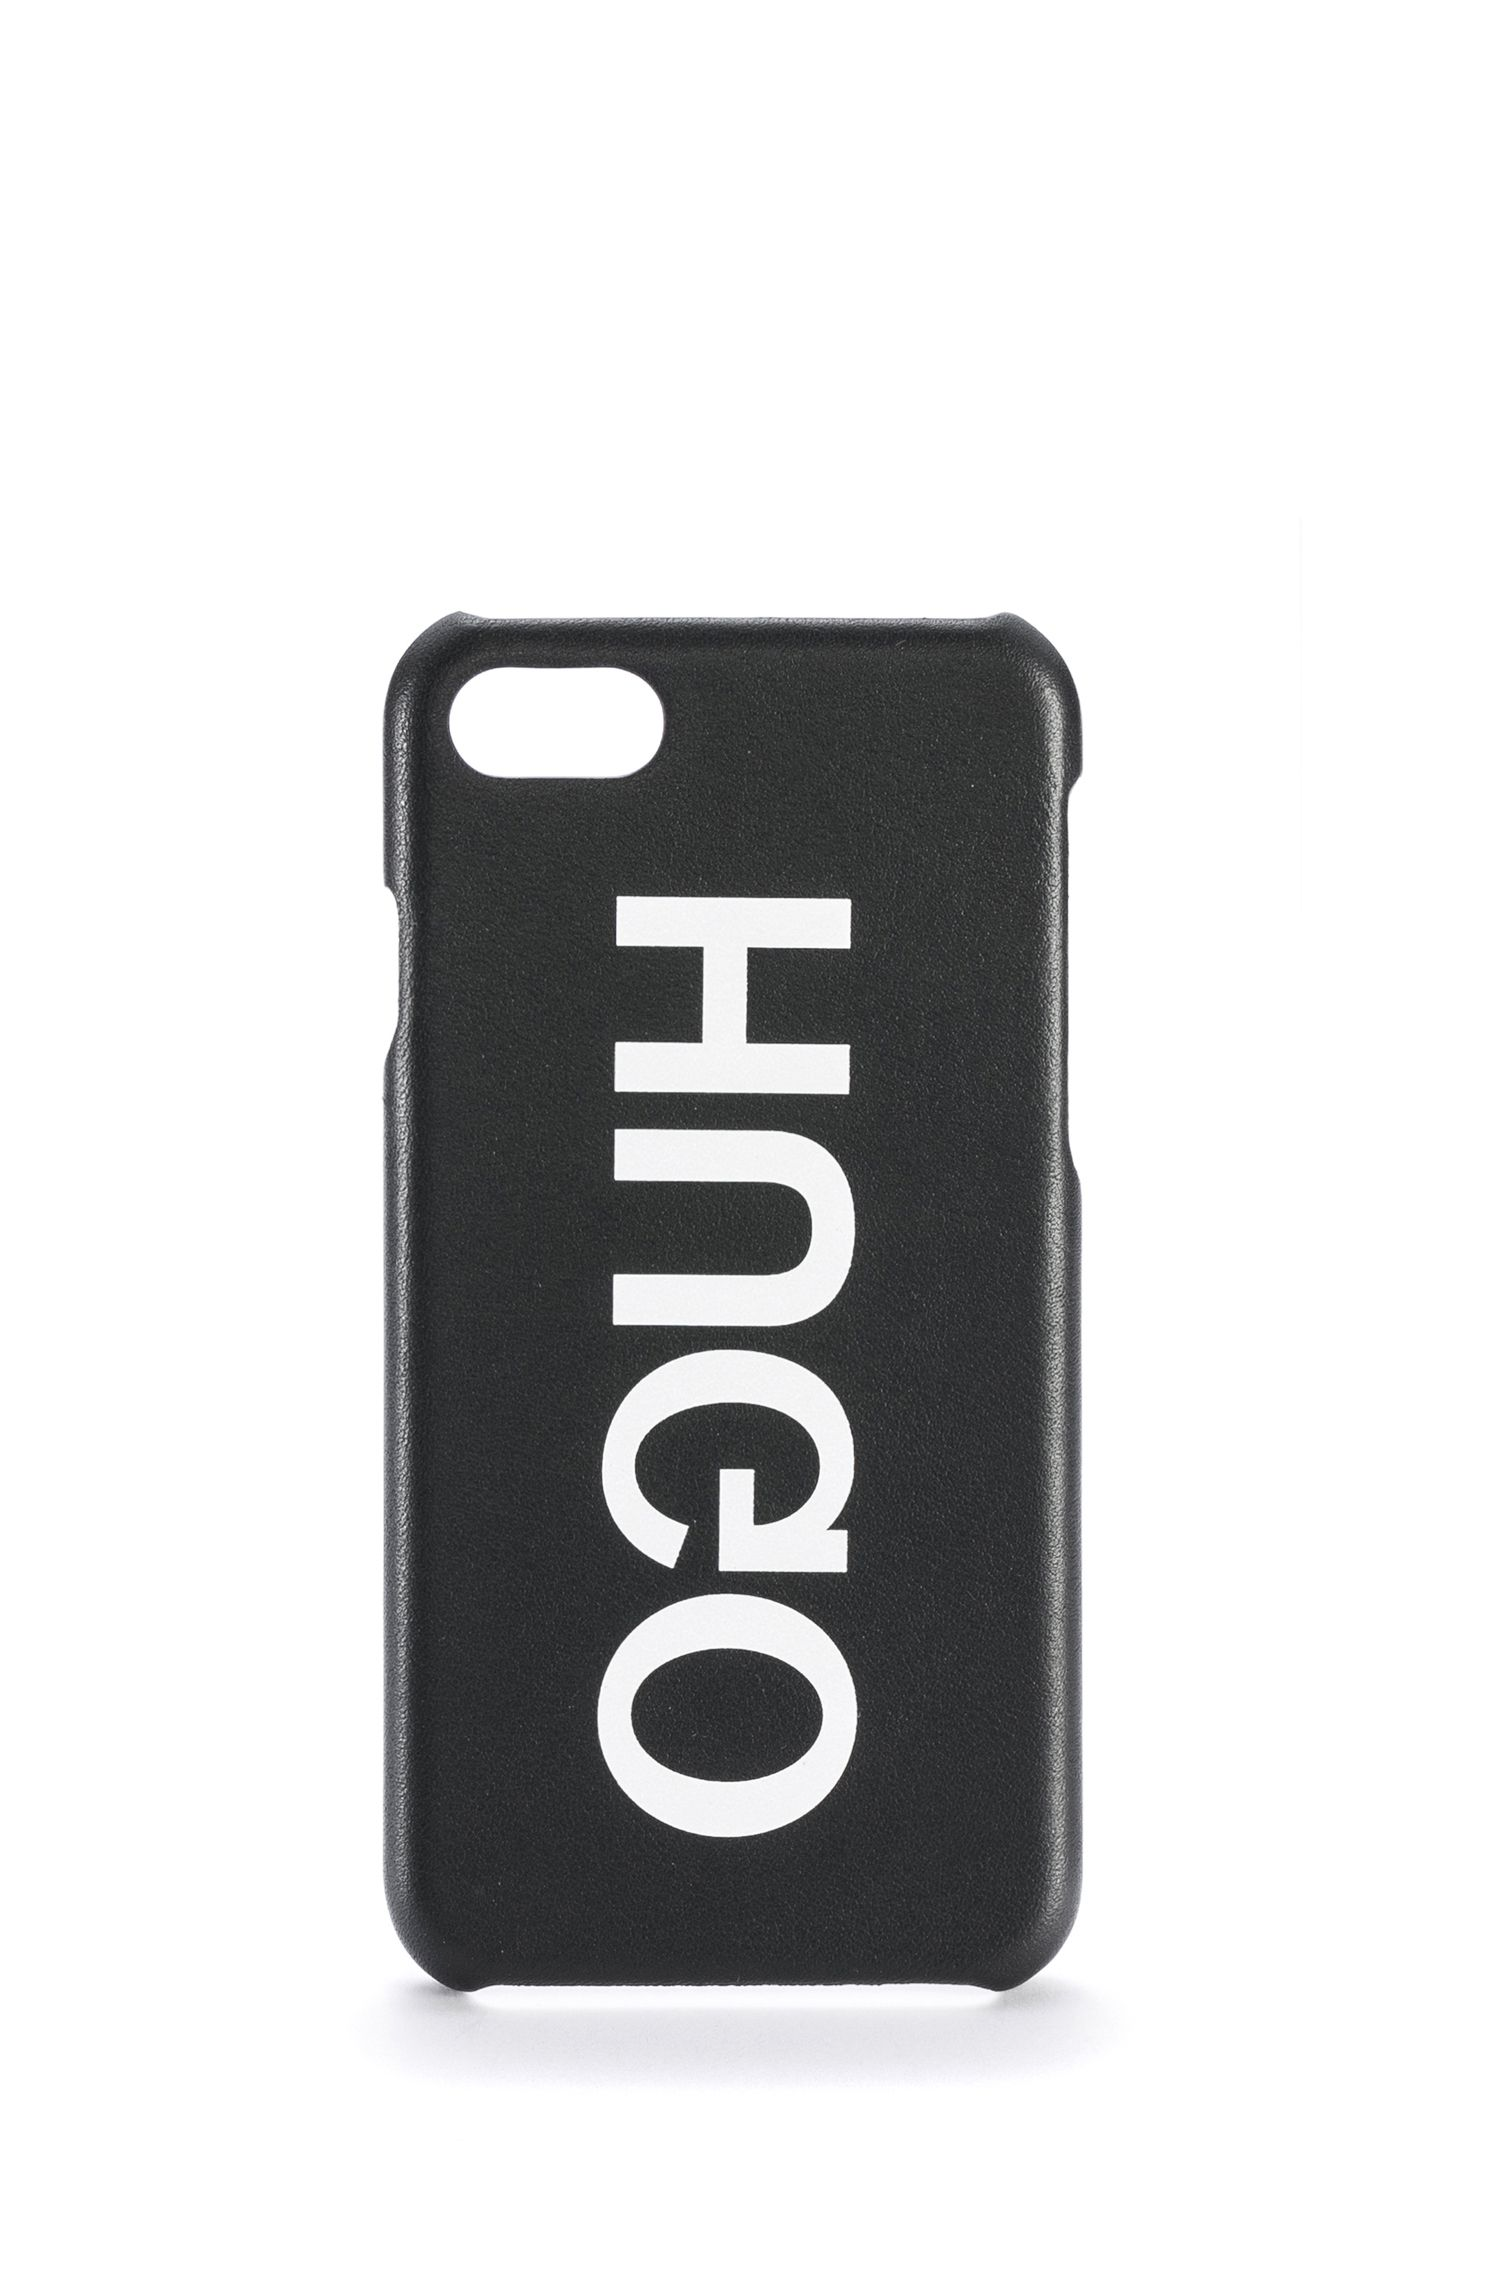 Funda de iPhone 7 con logo invertido